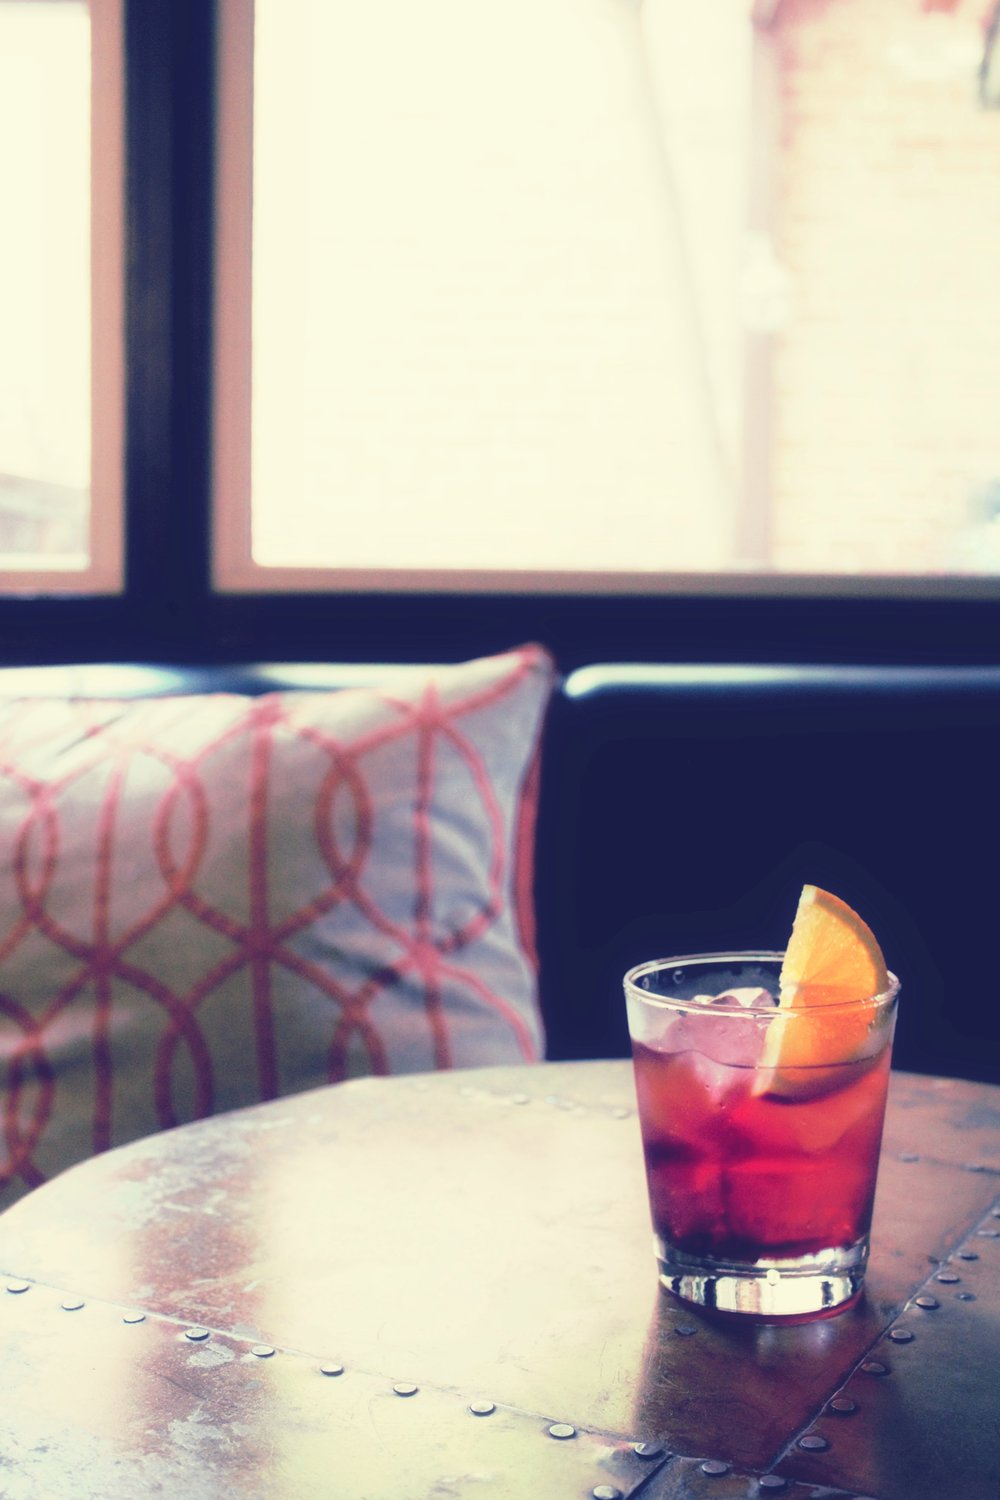 NEGRONI - PHOTO CREDIT: BRIAN KLEMM